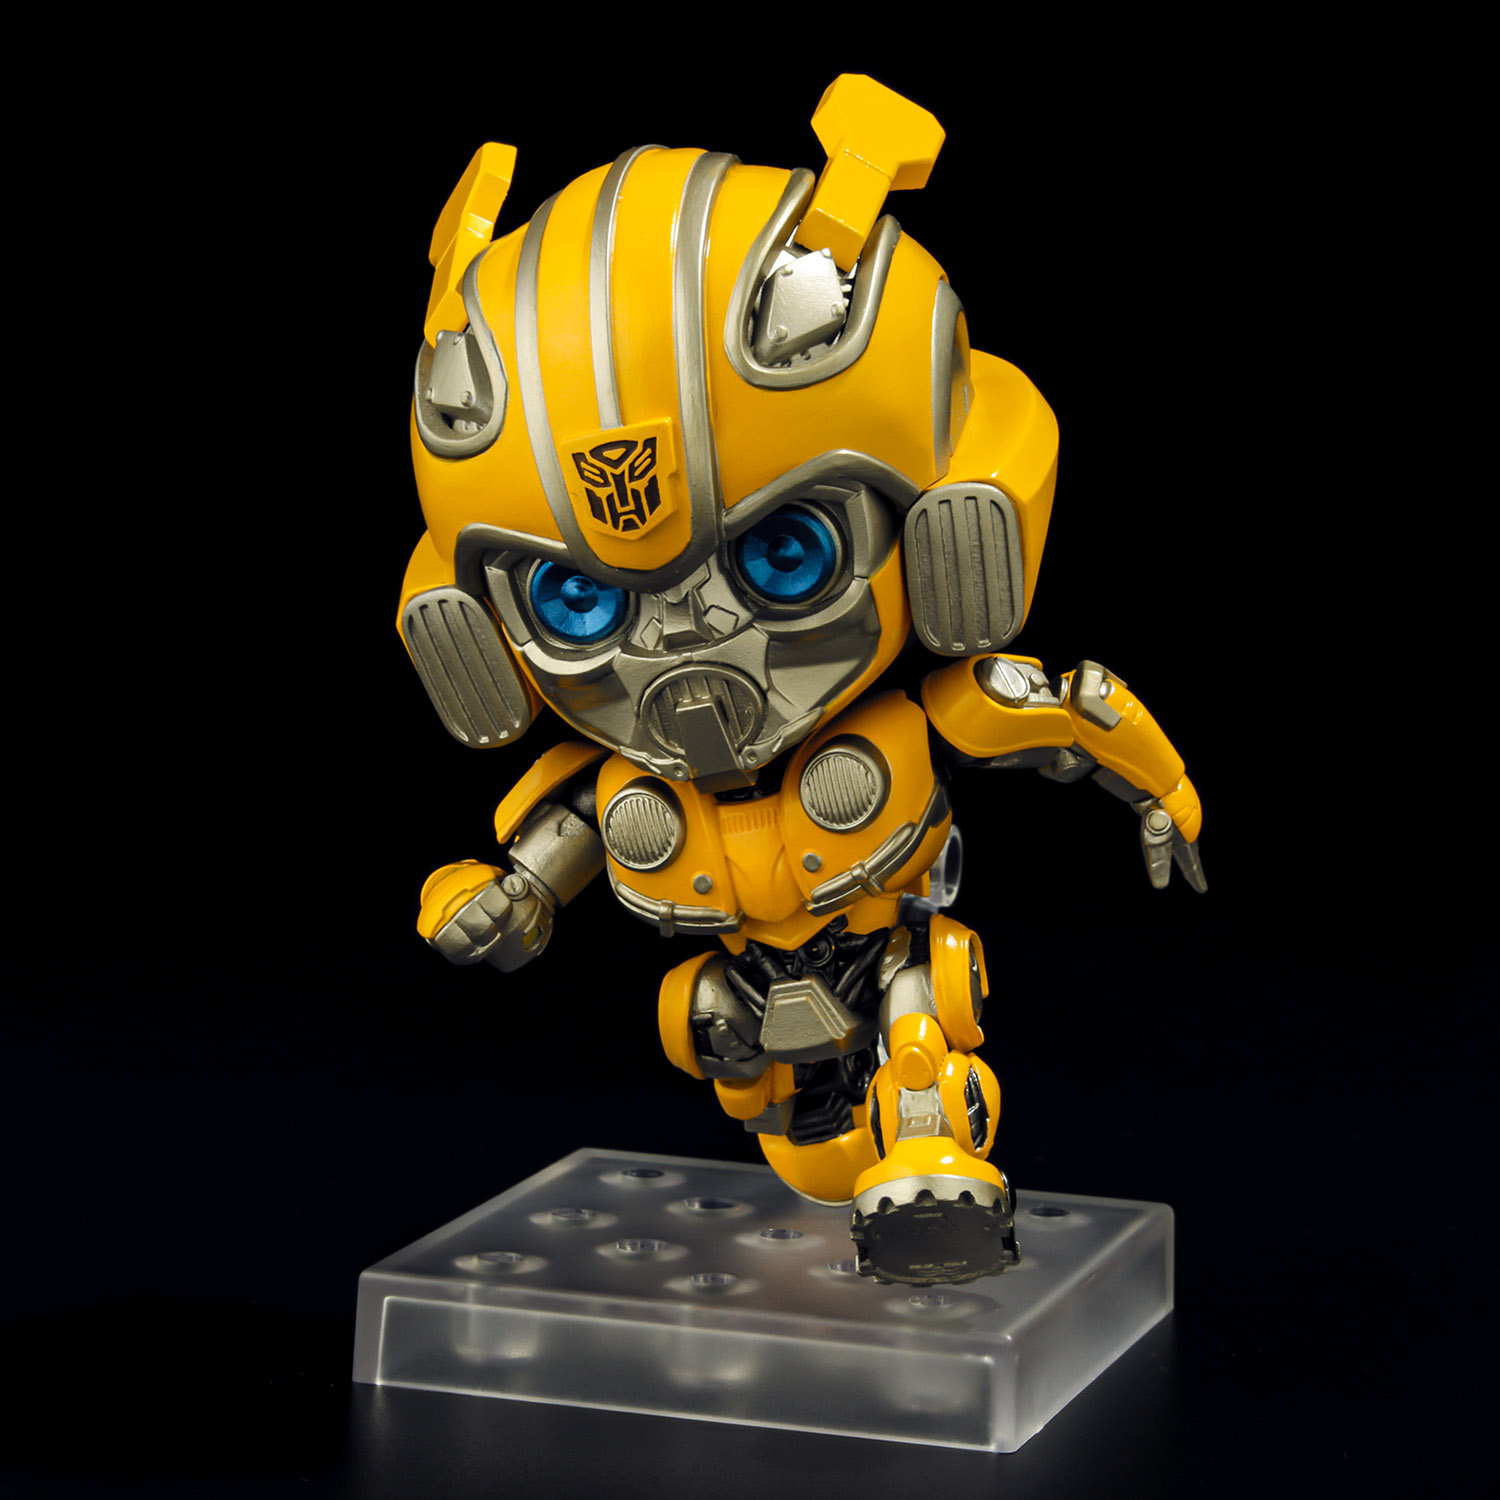 Bumblebee-action figure